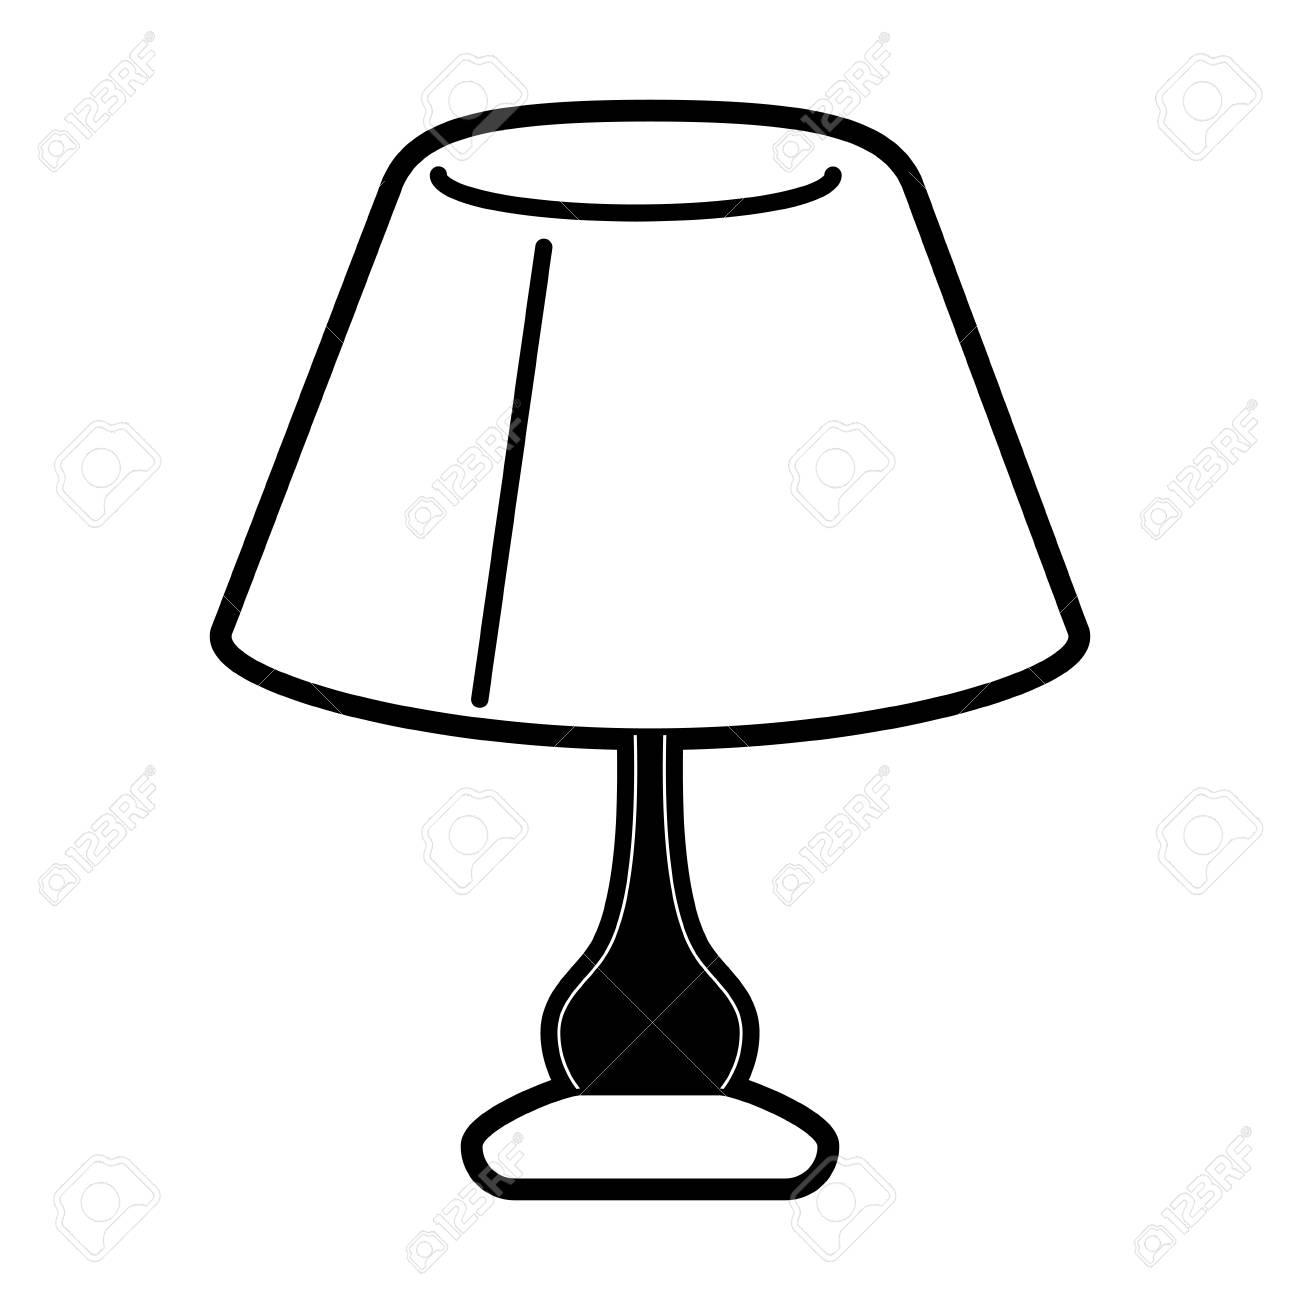 lamp night table icon image vector illustration design black...